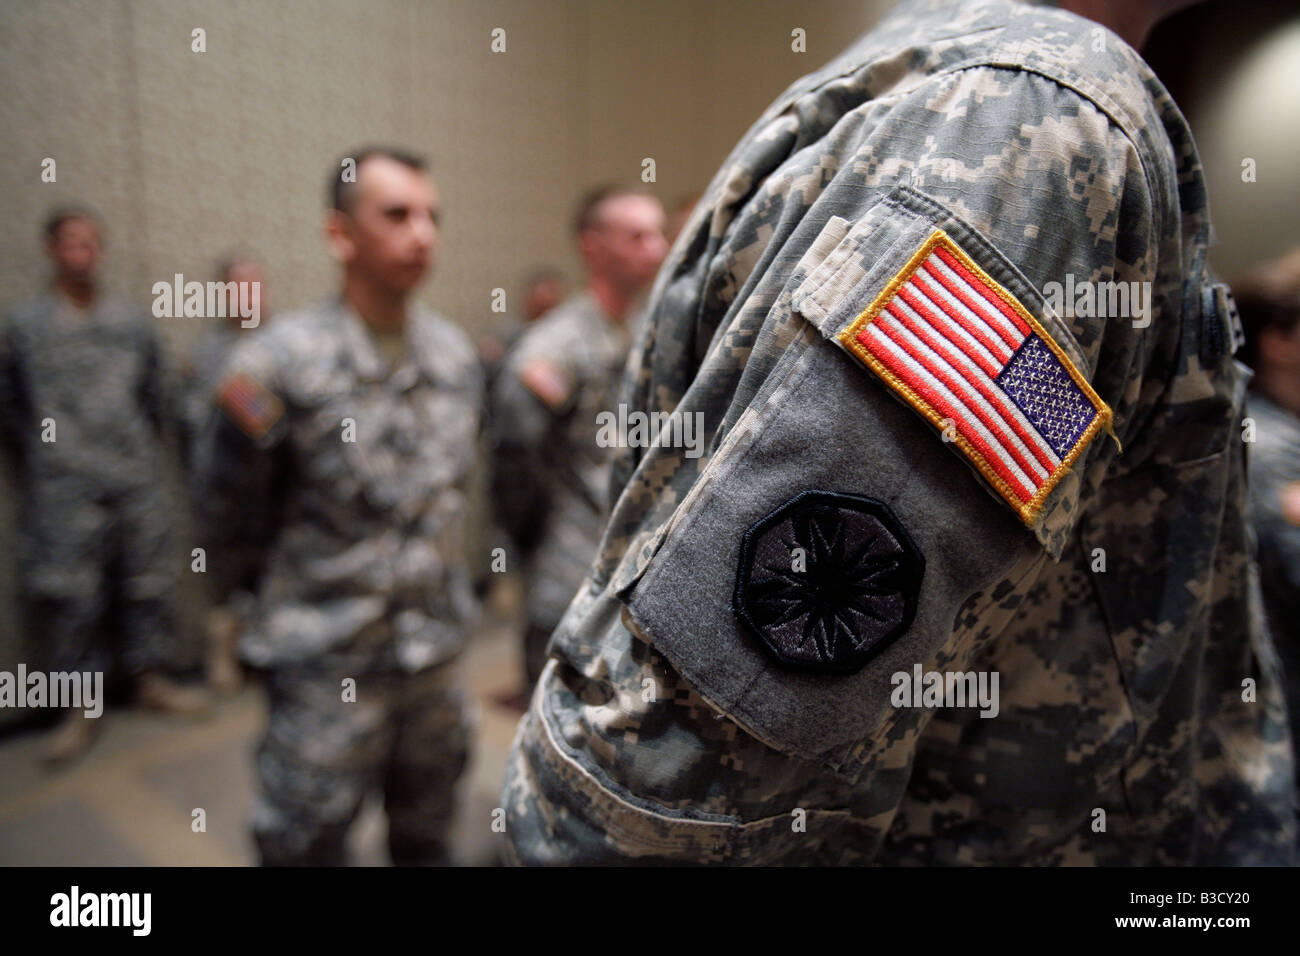 Army National Guard soldiers stand during a deployment ceremony in Boston Massachusetts - Stock Image